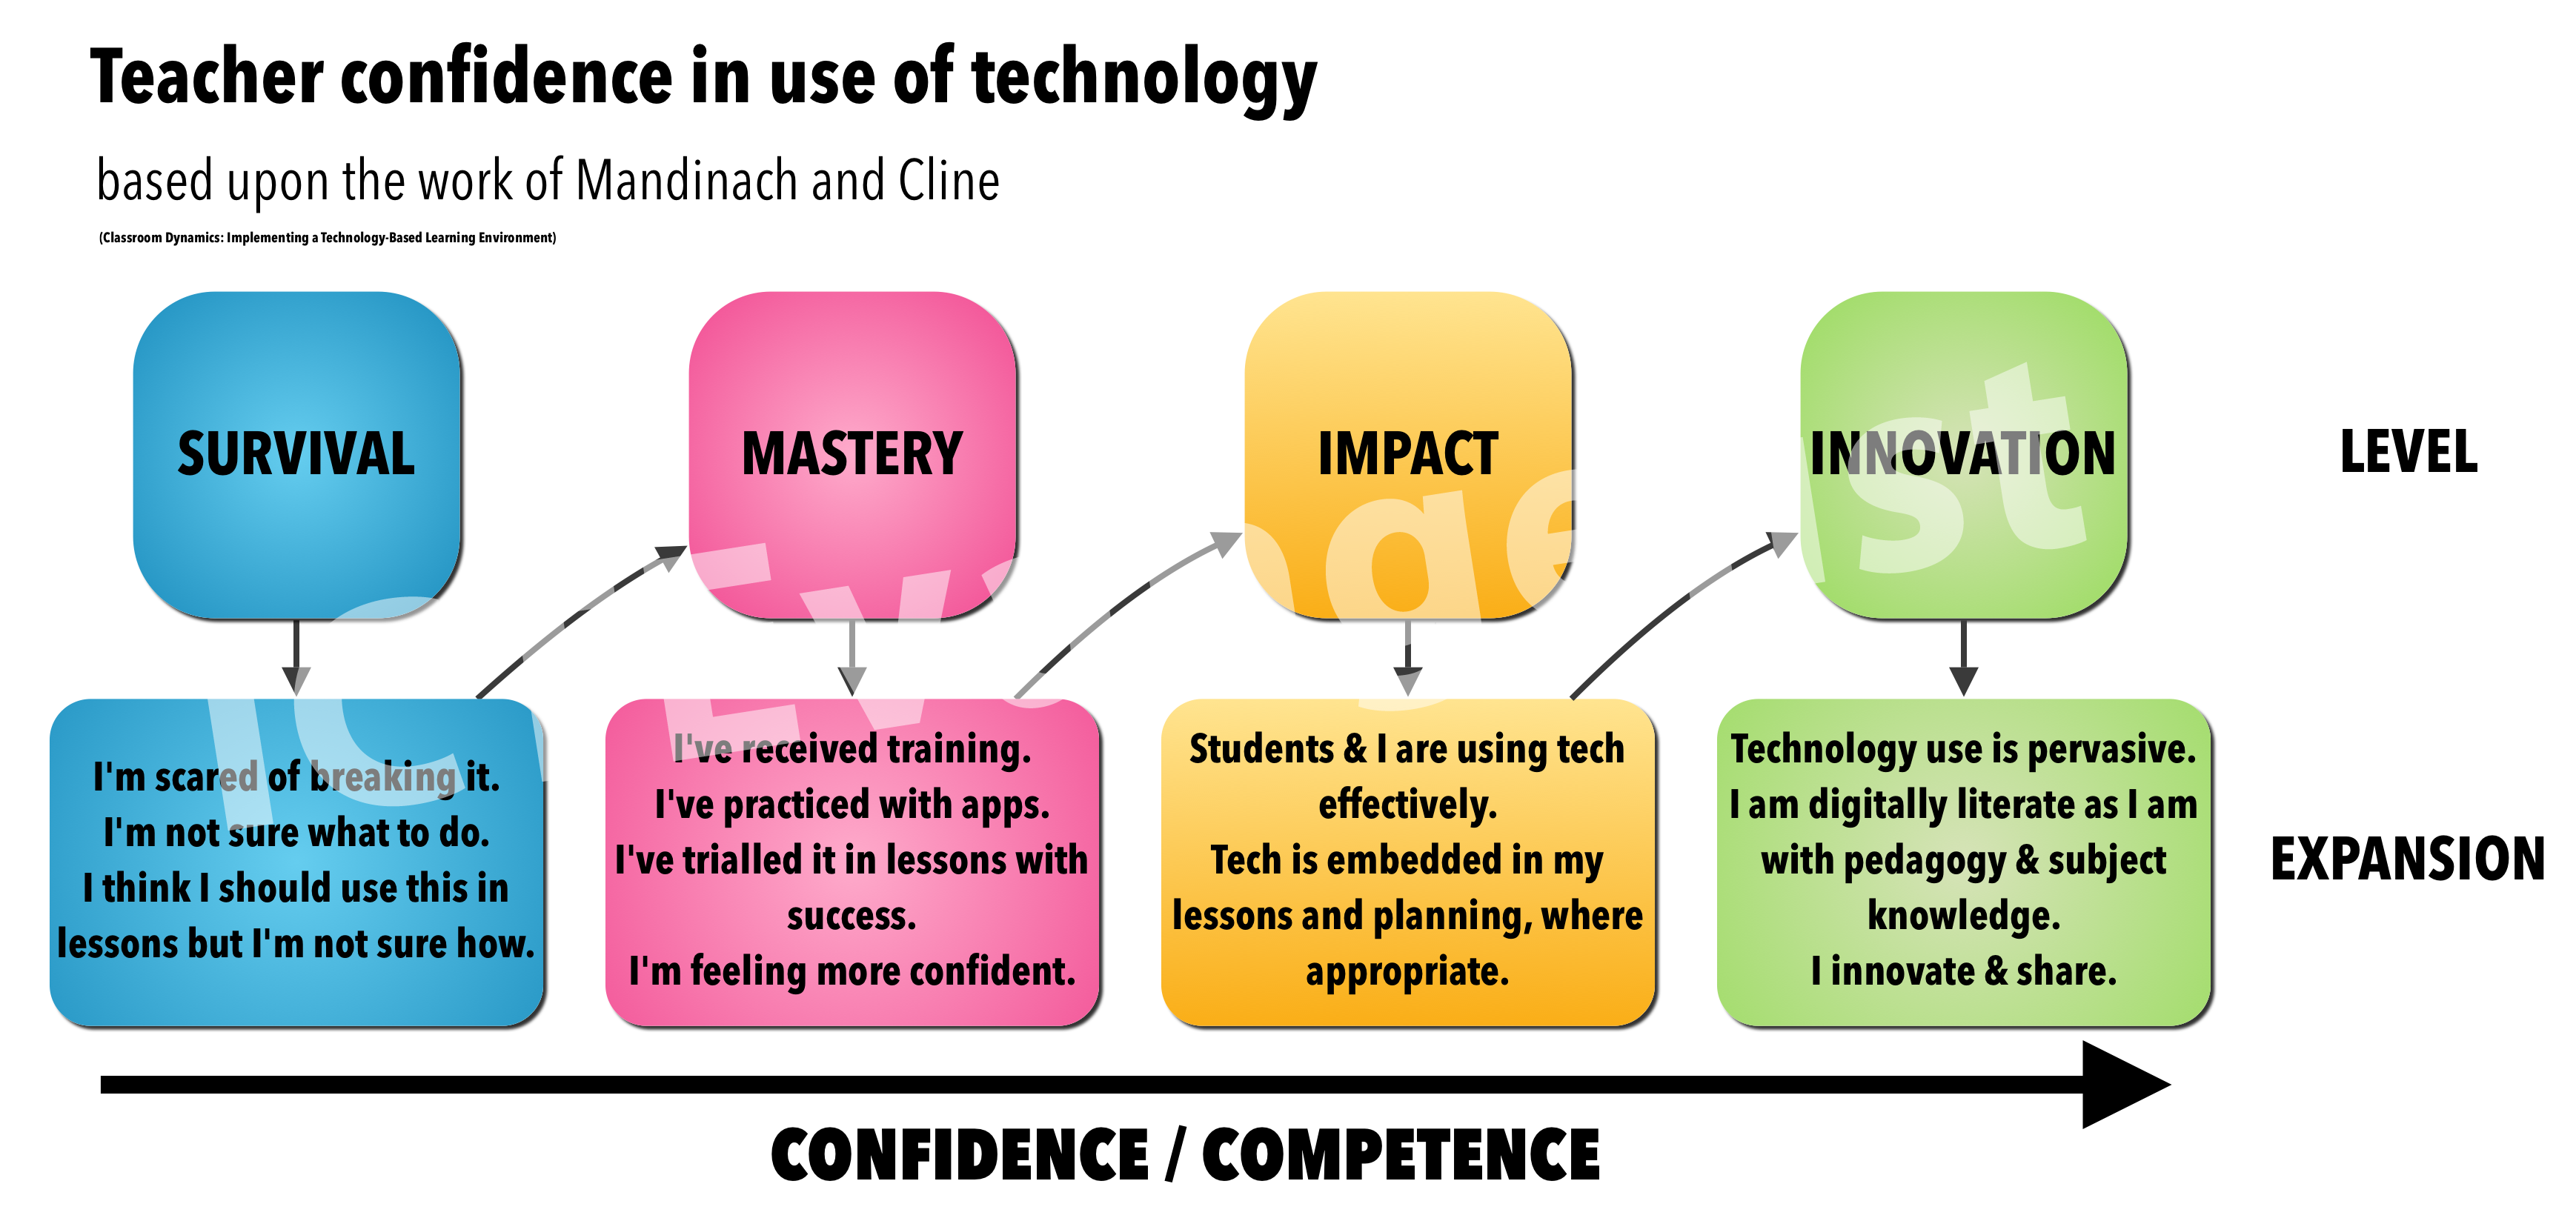 Anderson model of teacher confidence